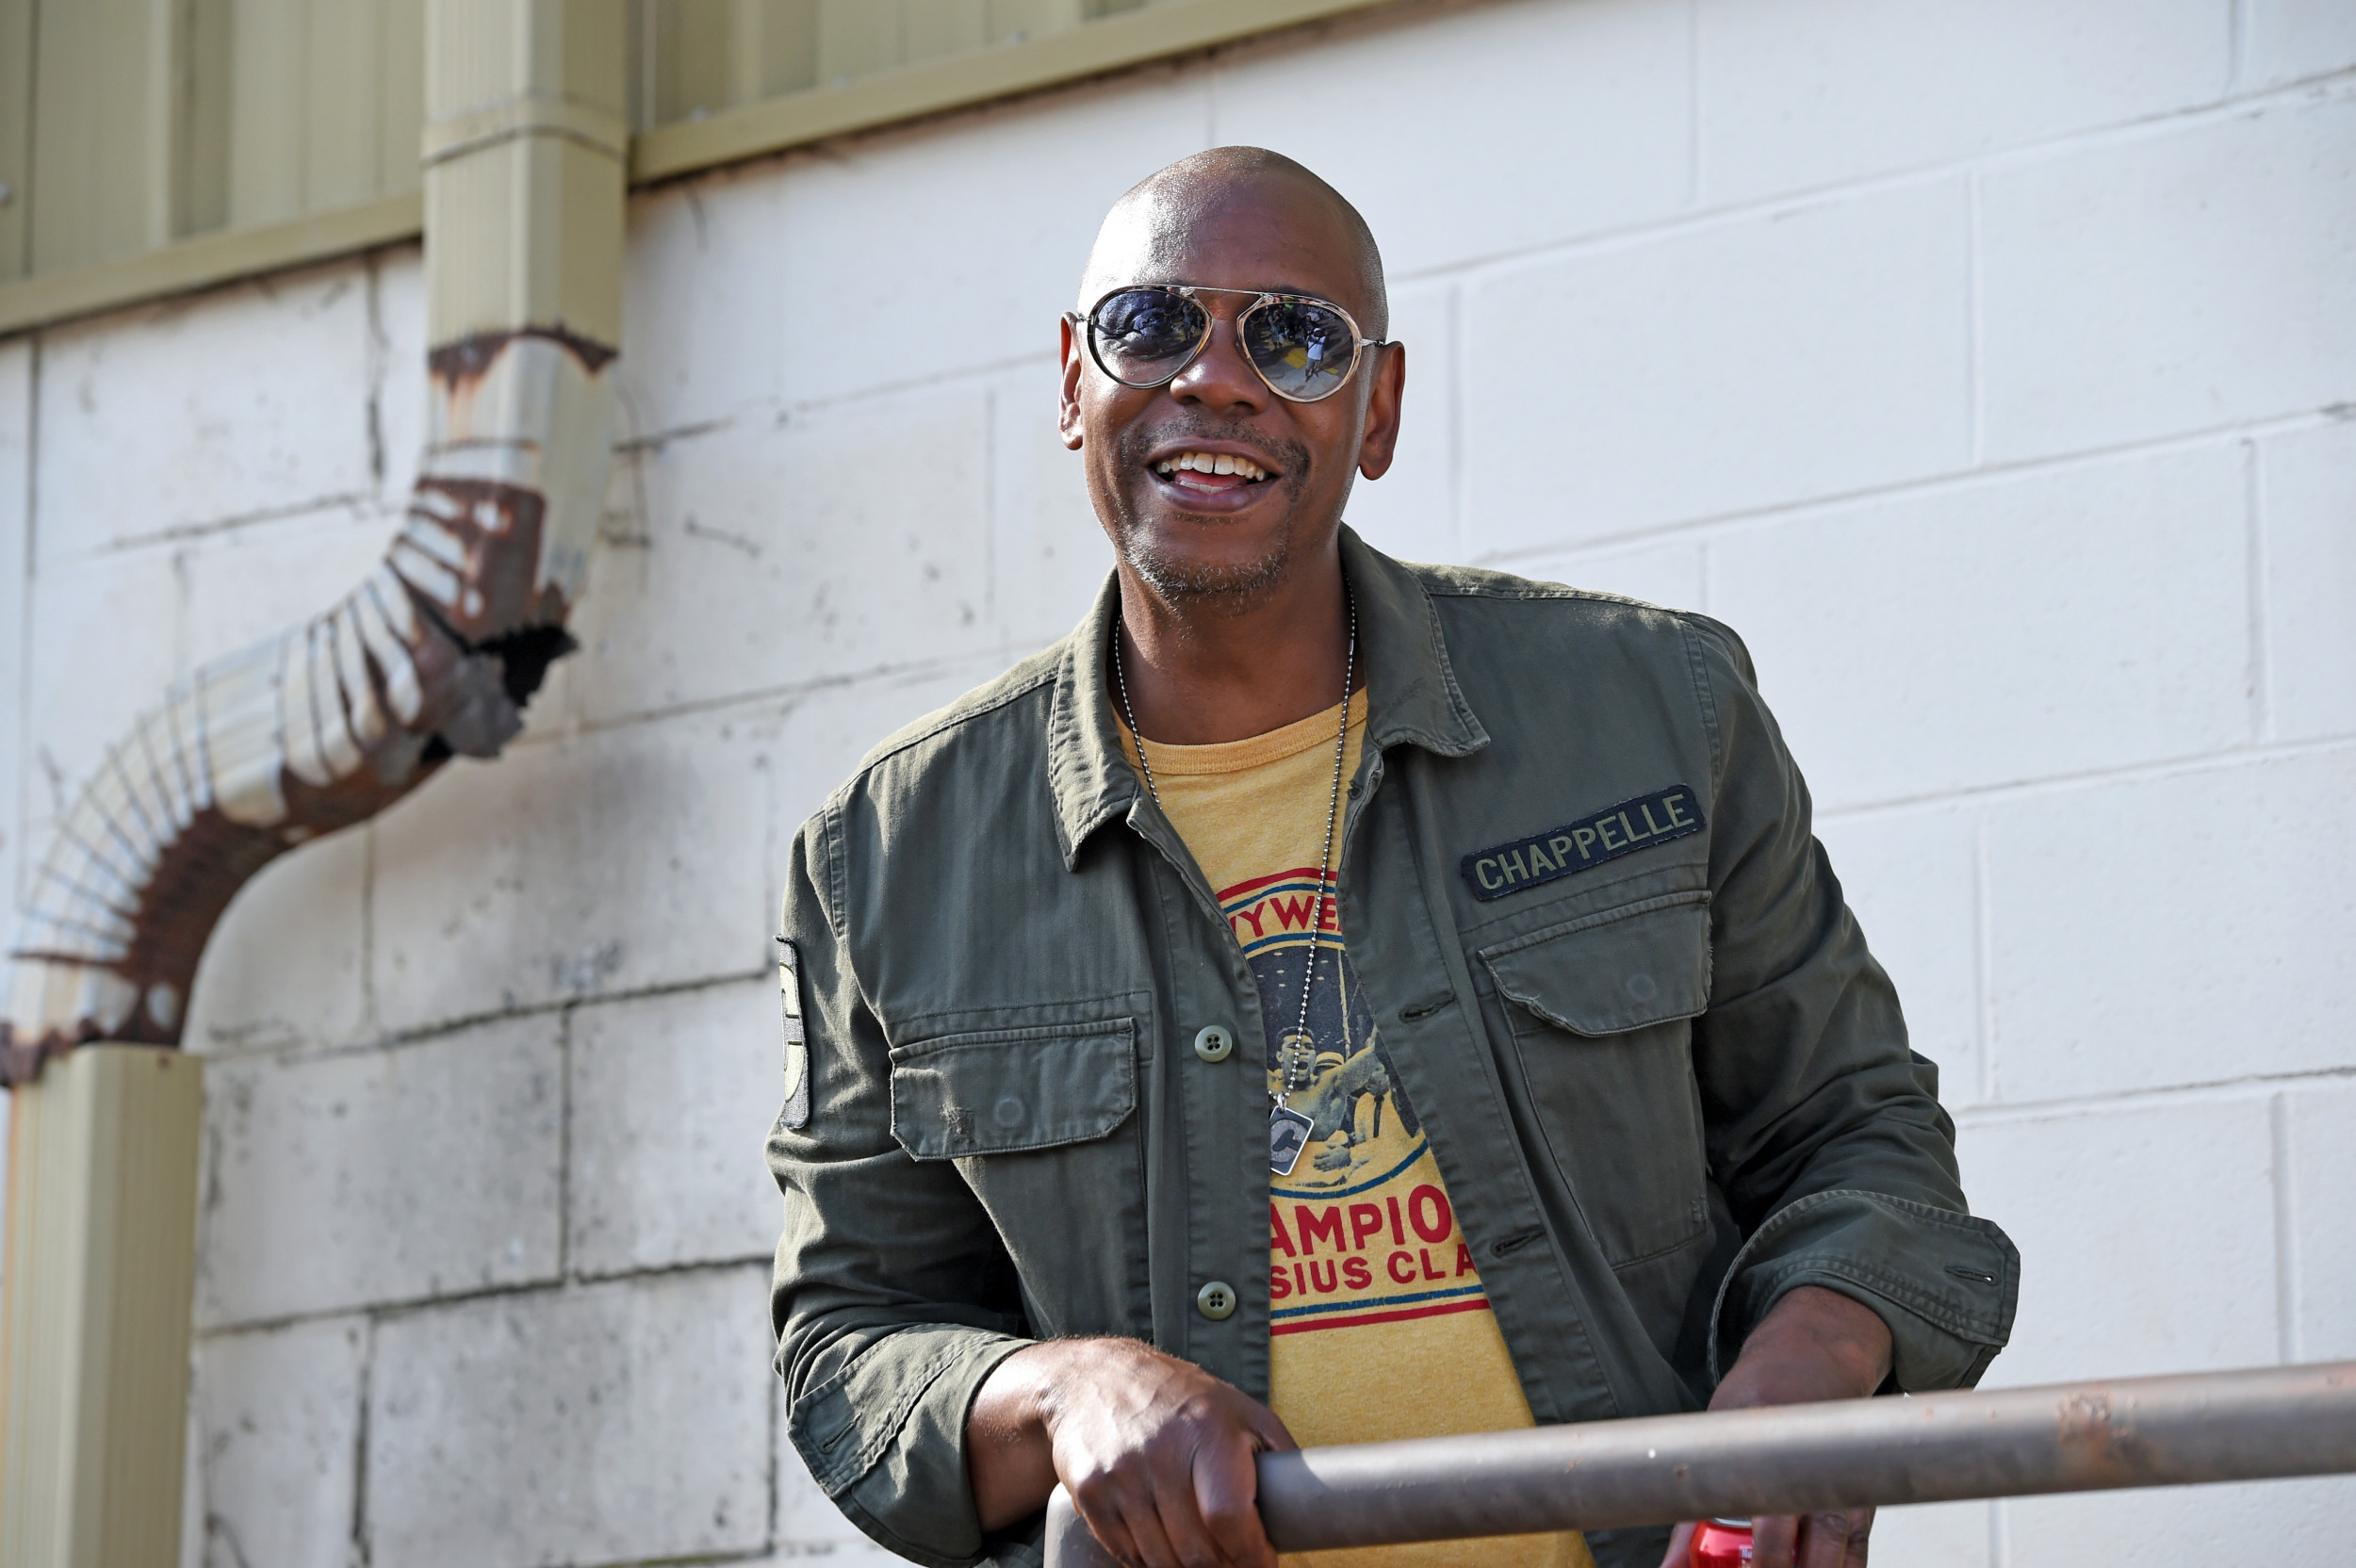 Dave Chappelle's Netflix Special 'Sticks & Stones' Rated Low